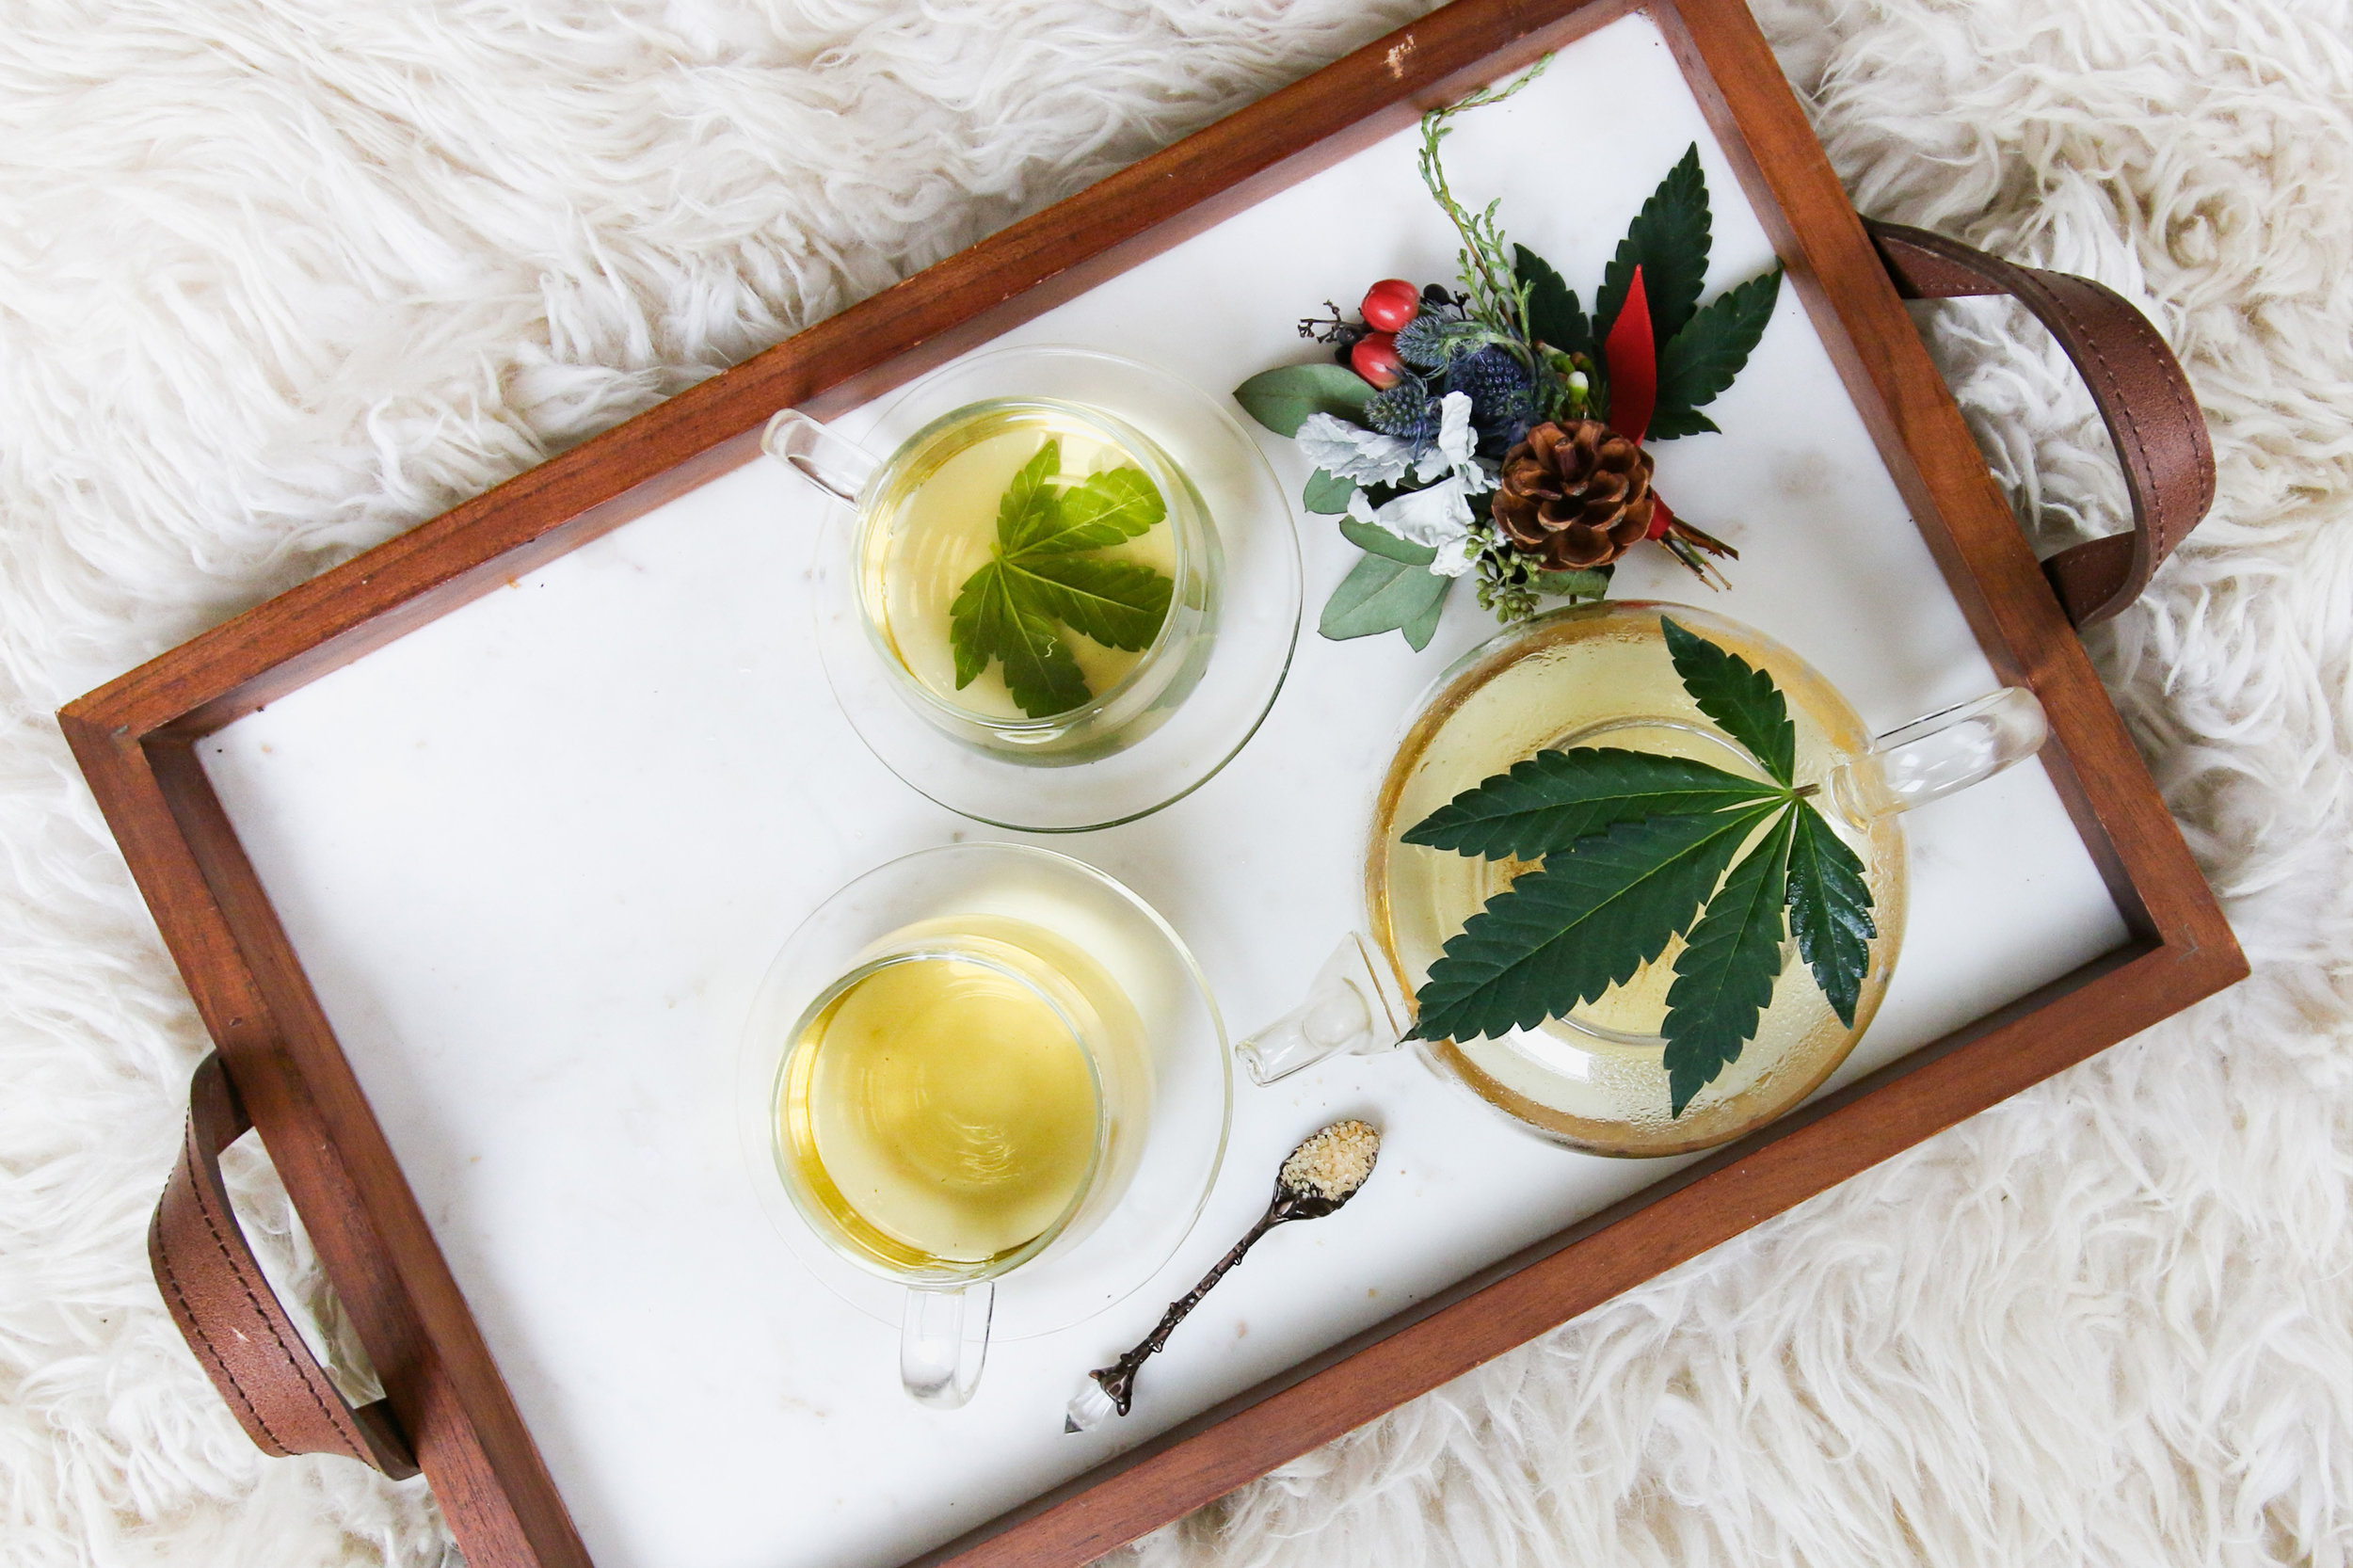 PODCAST - Listen to a podcast episode on our experience starting meaningful sales conversations int he cannabis industry.